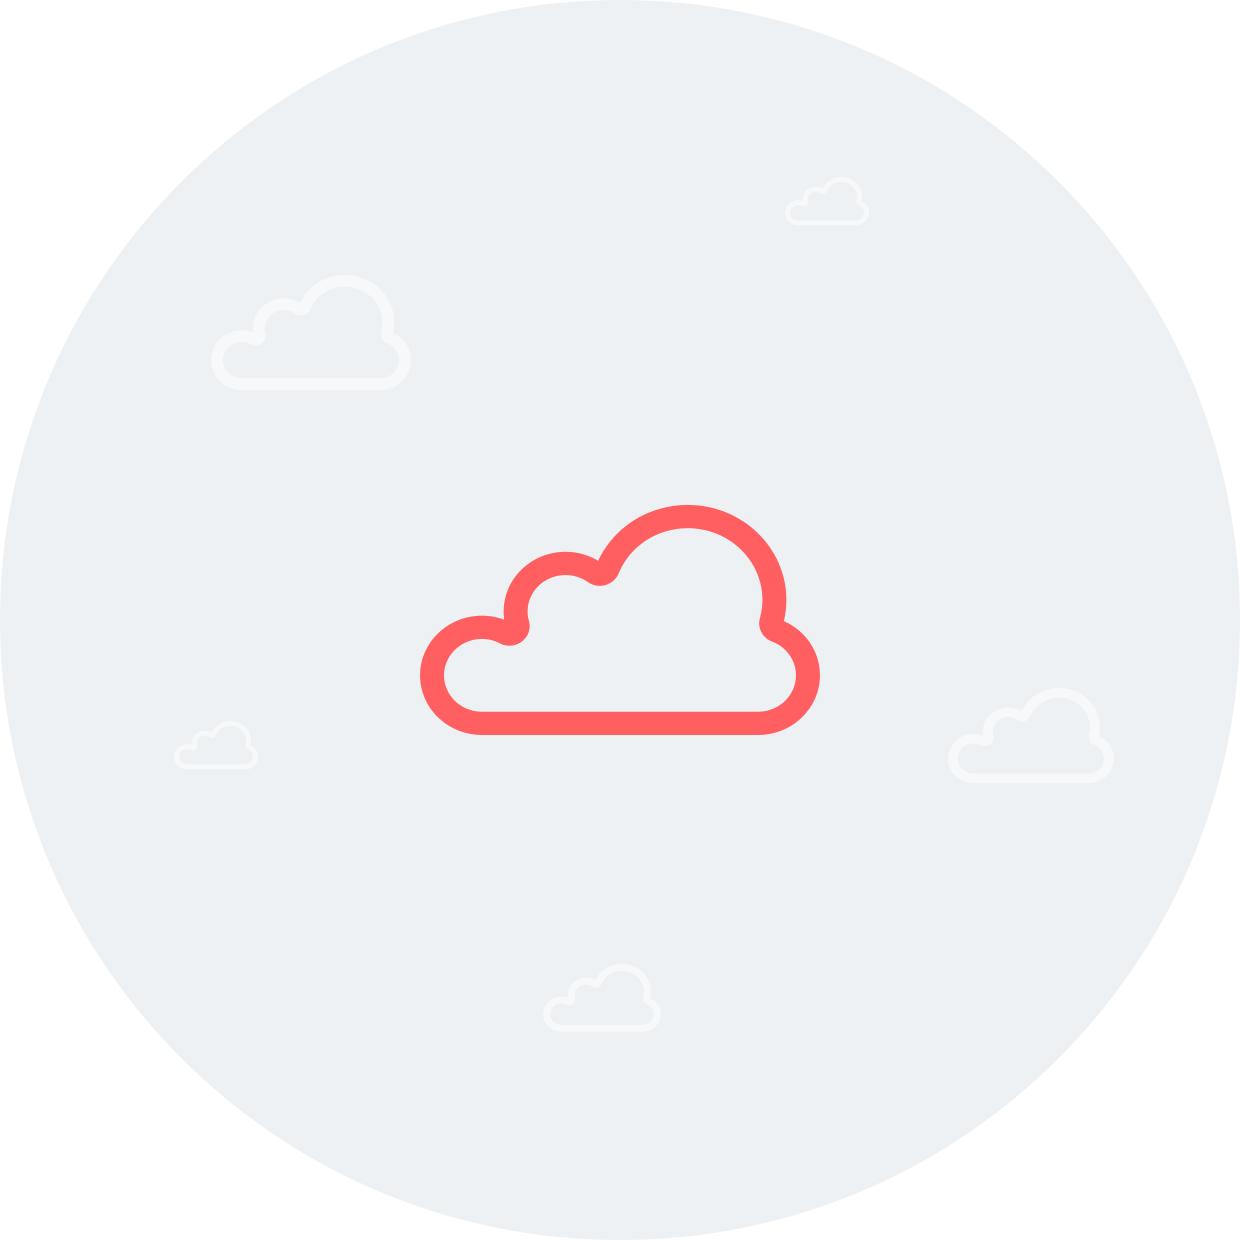 Cloud expertise